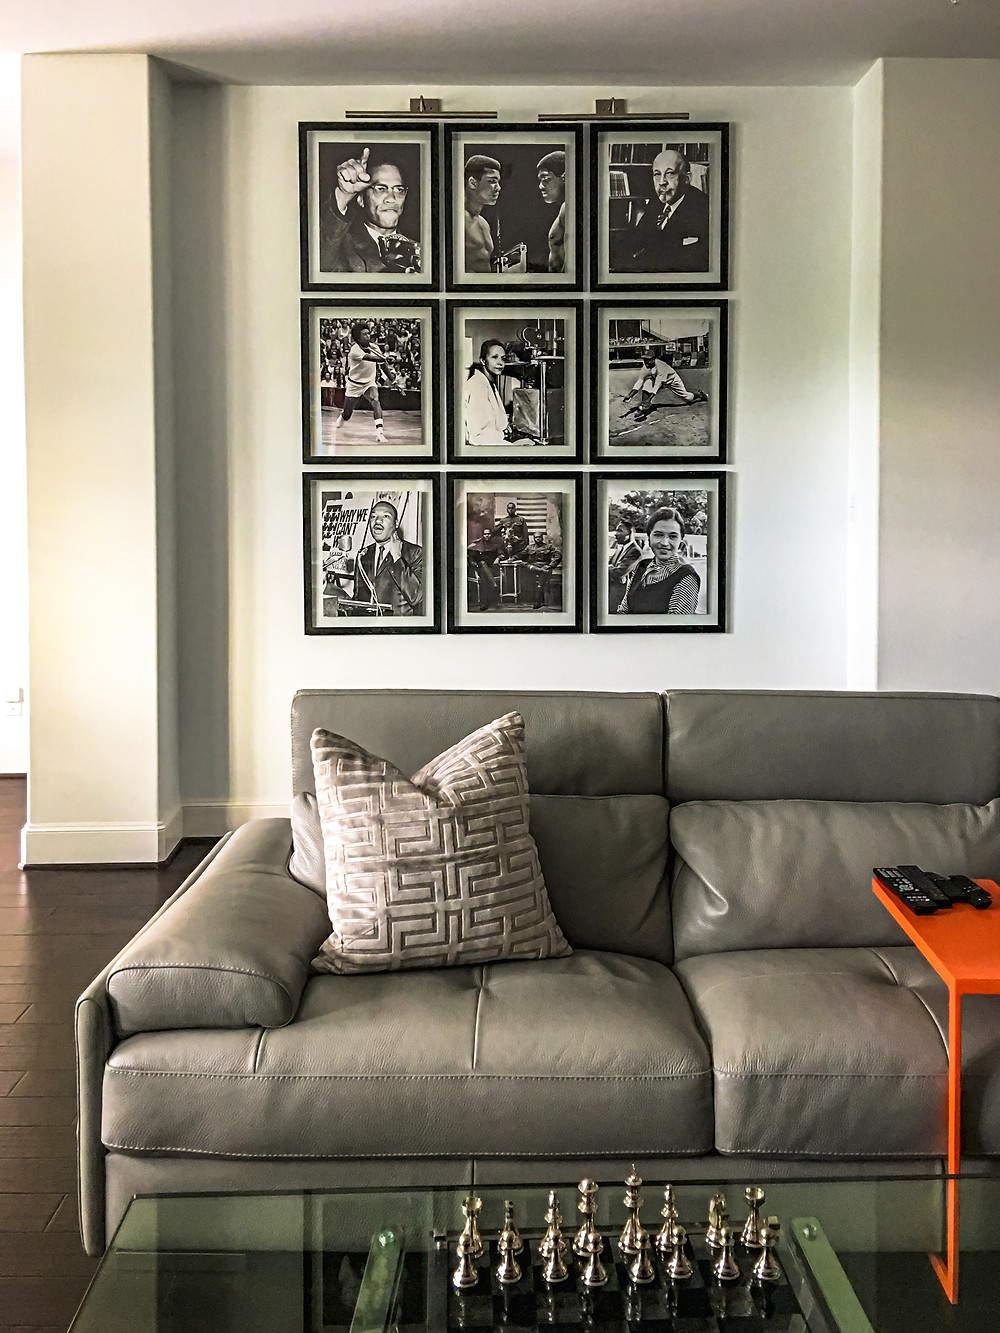 Gallery Wall of Important Black Persons on White Wall, Under Burnished Steel Picture Light, Facing Warm Gray Leather Sectional